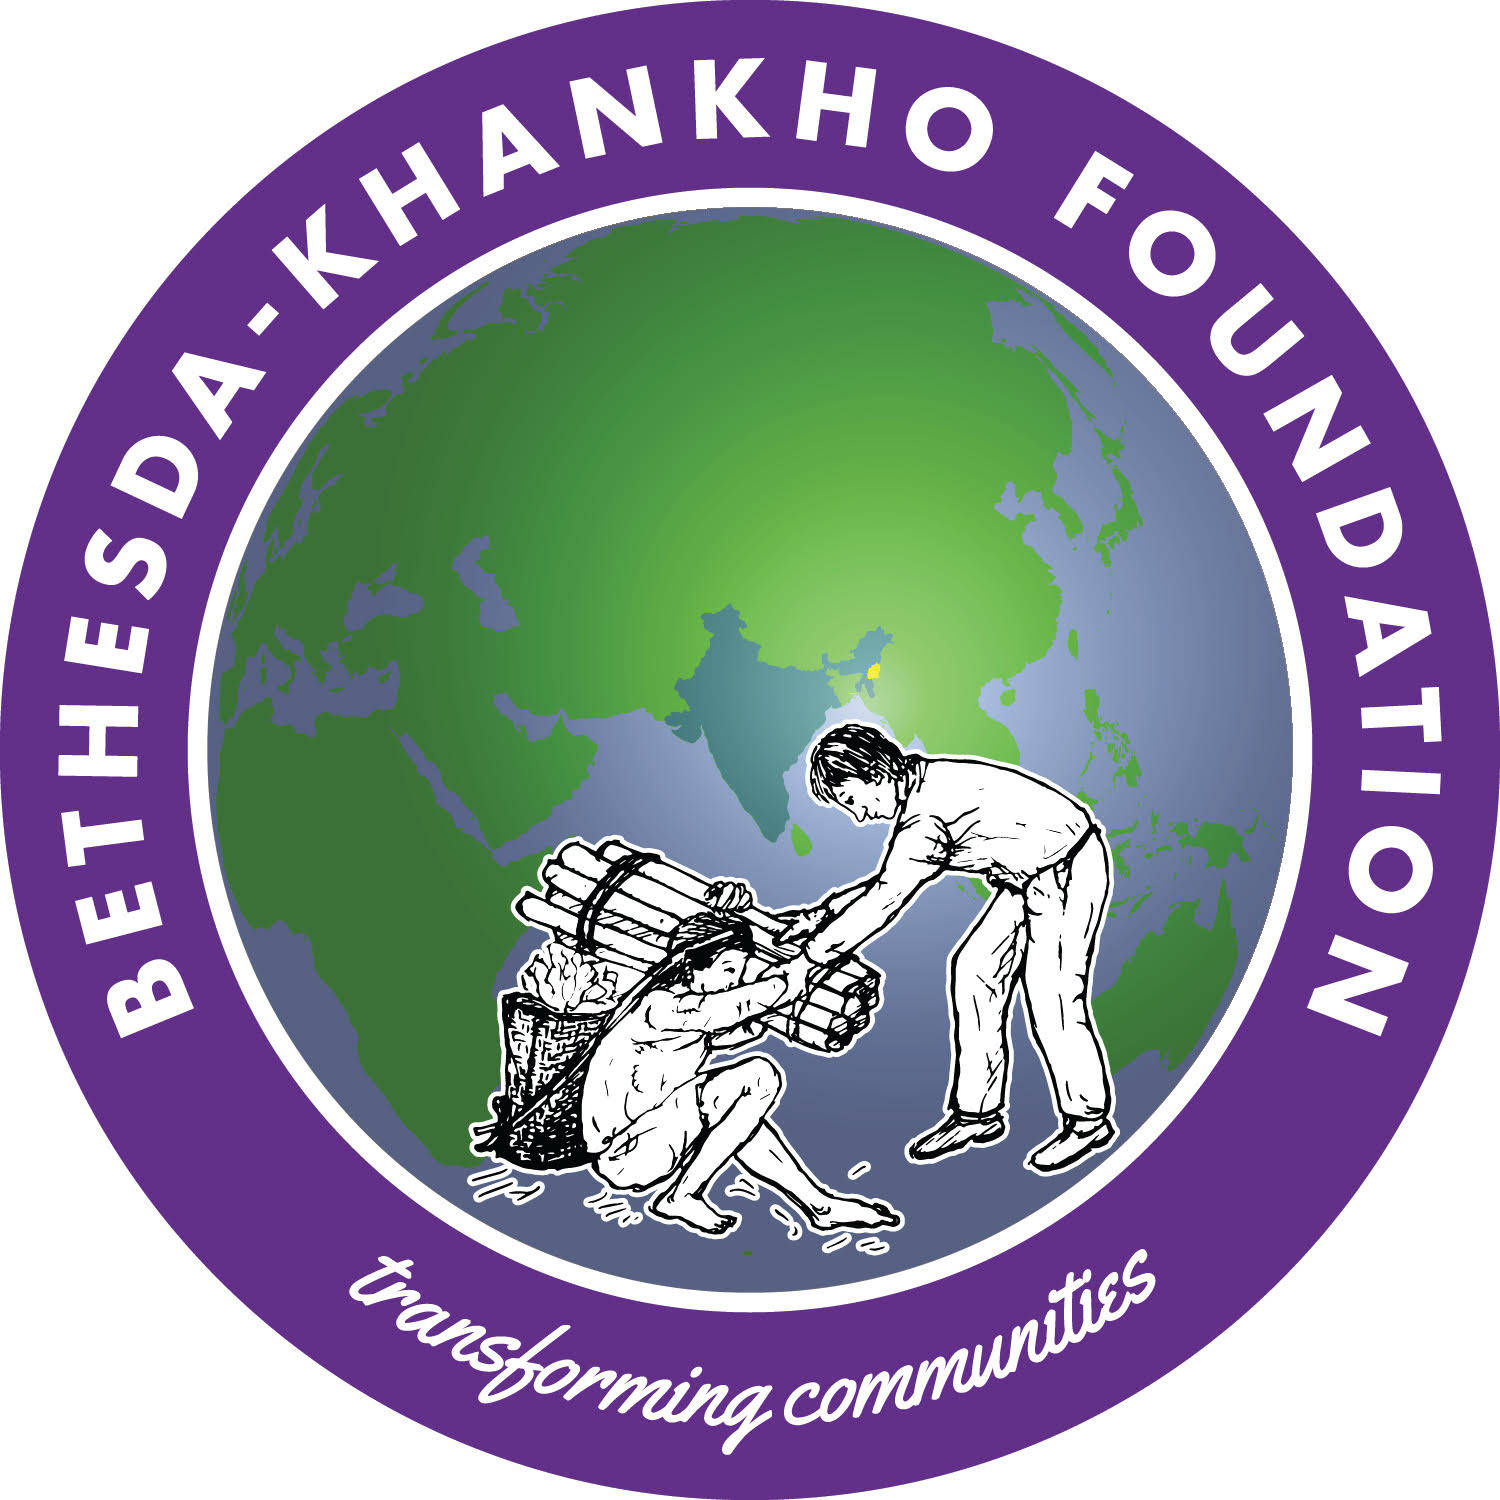 Bethesda-Khankho Foundation